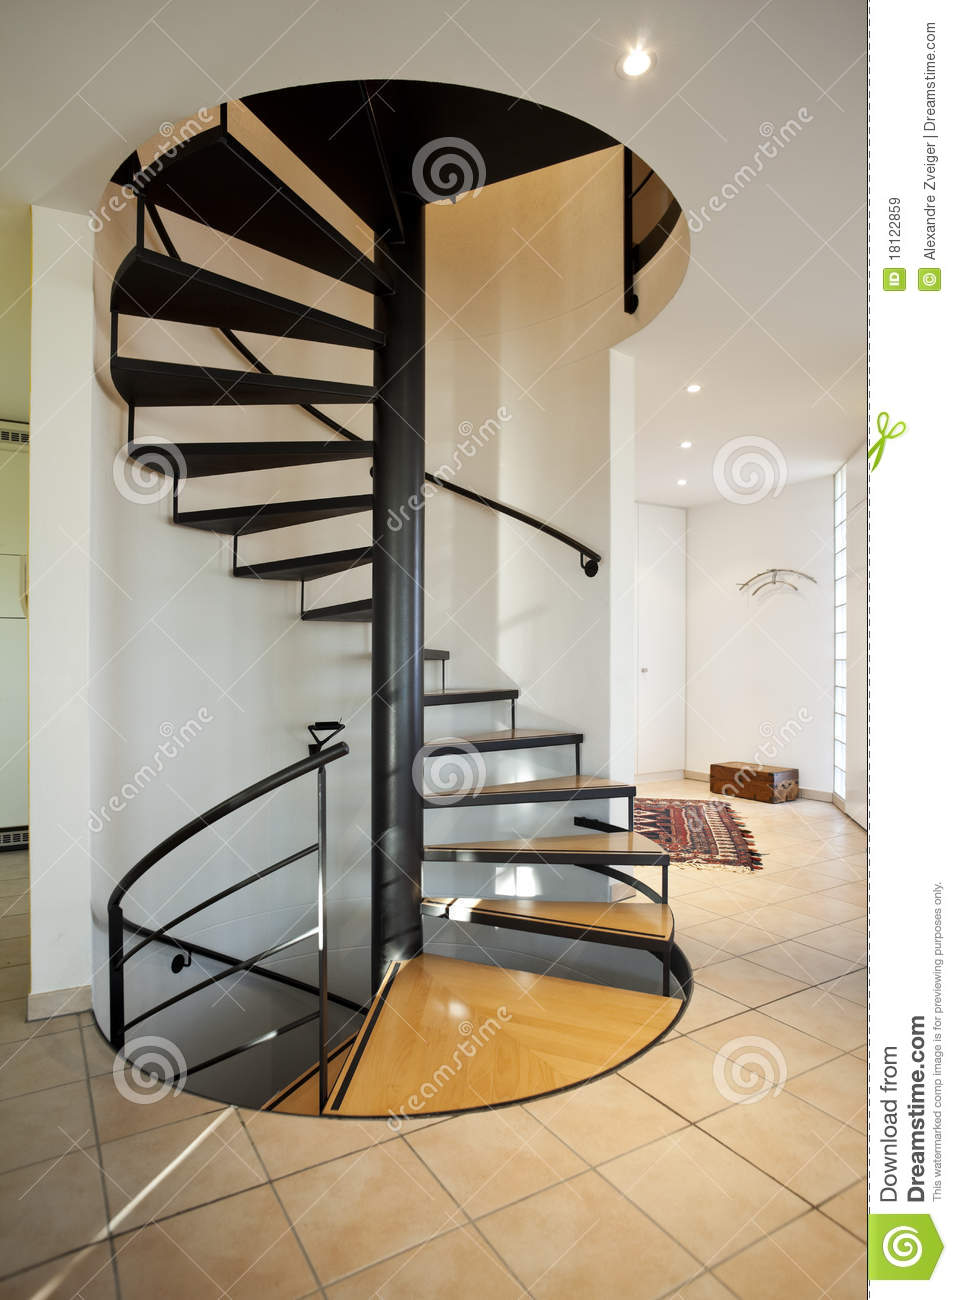 Modern house spiral staircase stock image image of for Spiral staircase house plans